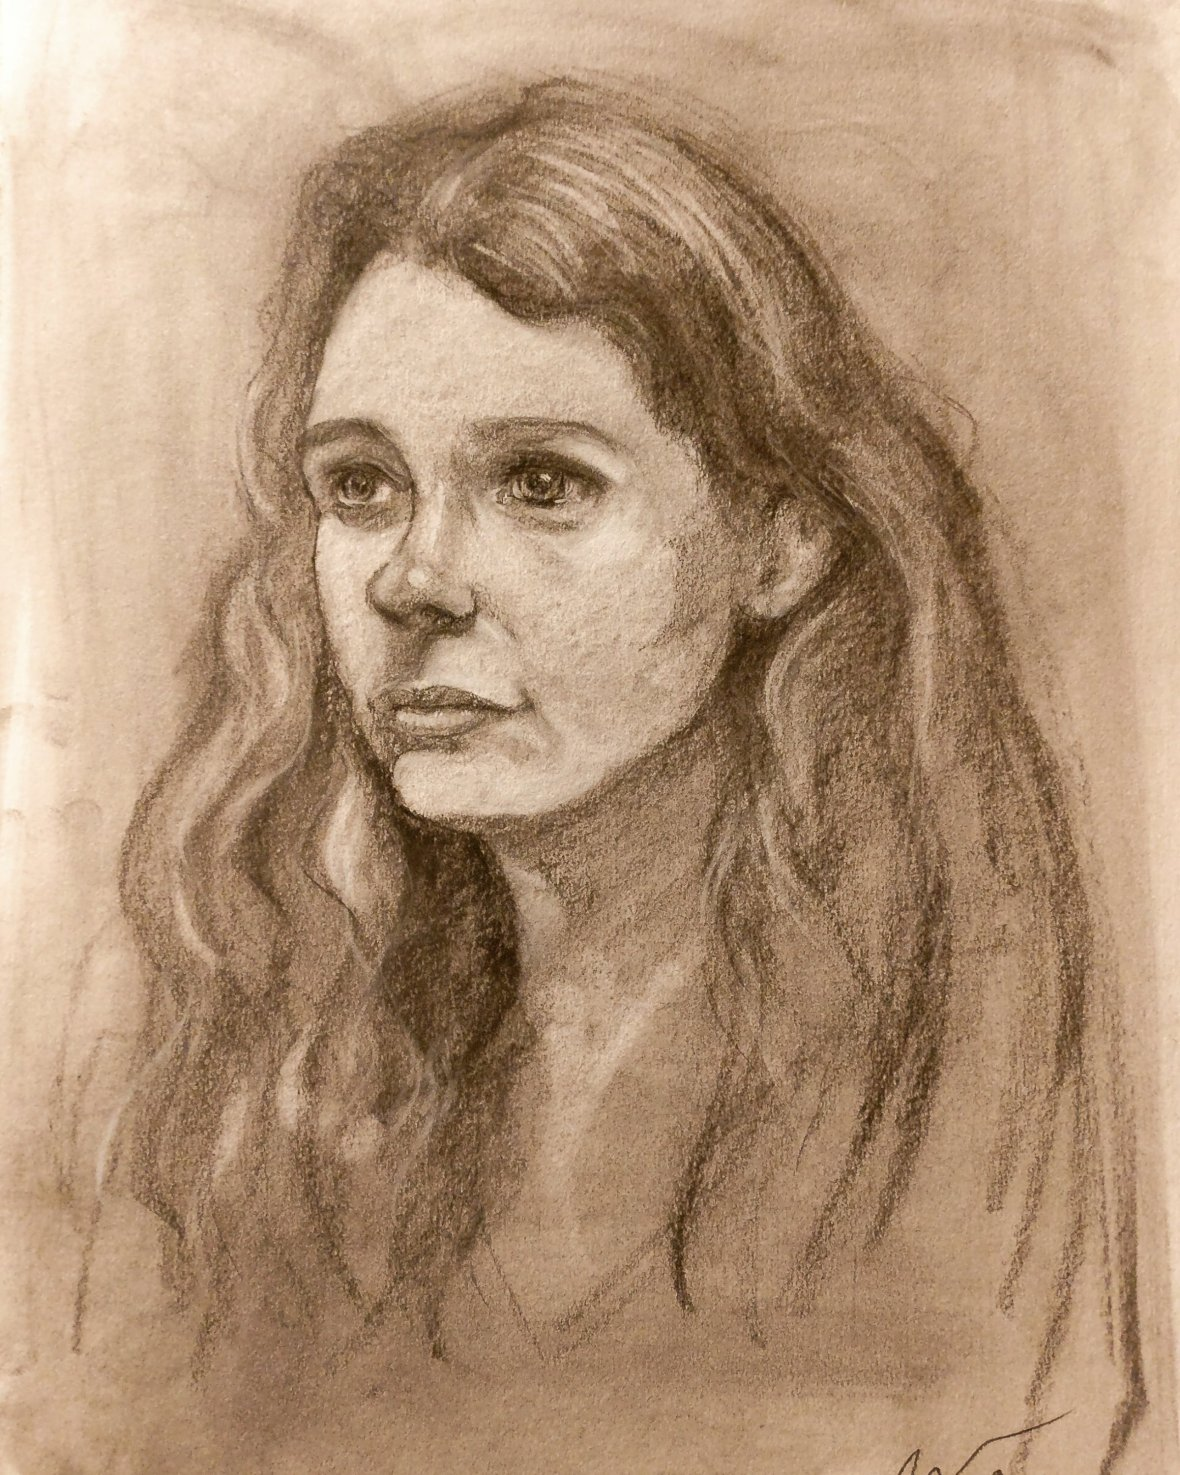 Charcoal drawing of a young lady with long curly hair